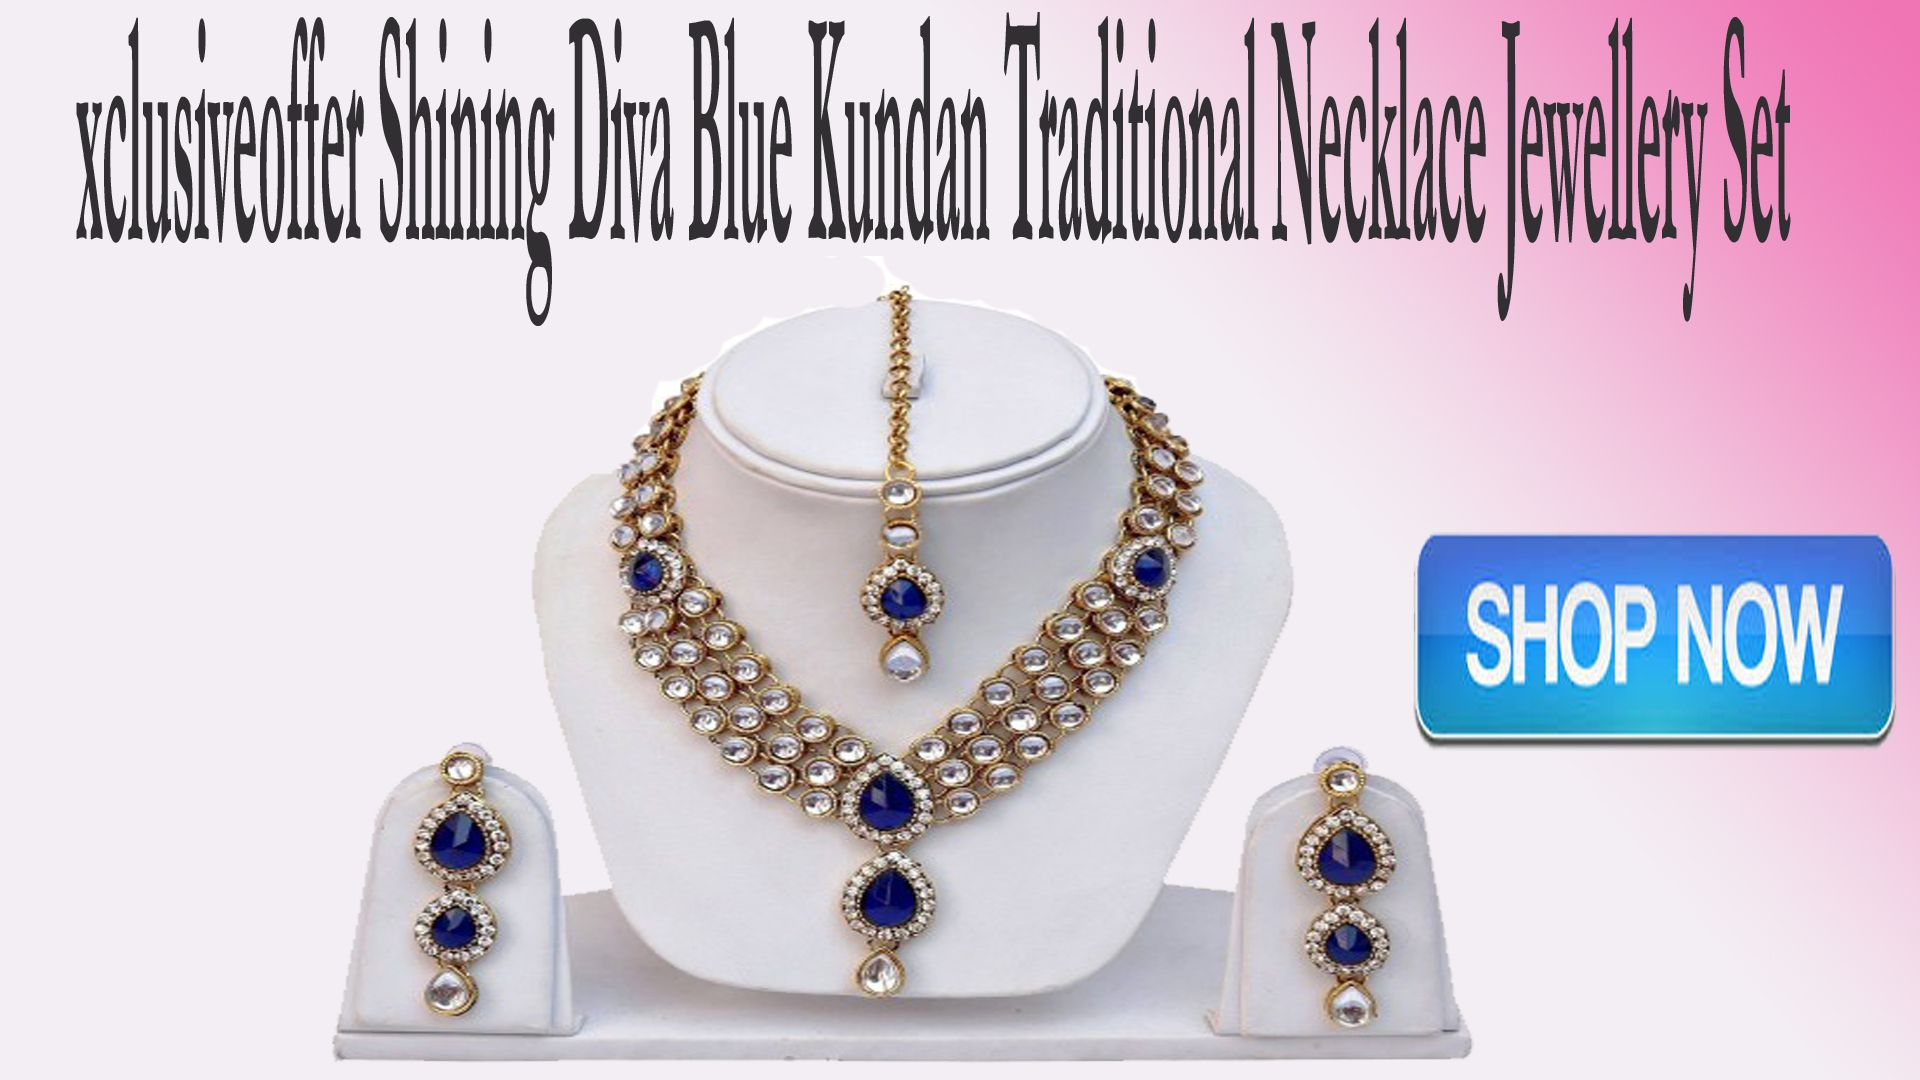 xclusiveoffer give special discount on shining diva blue